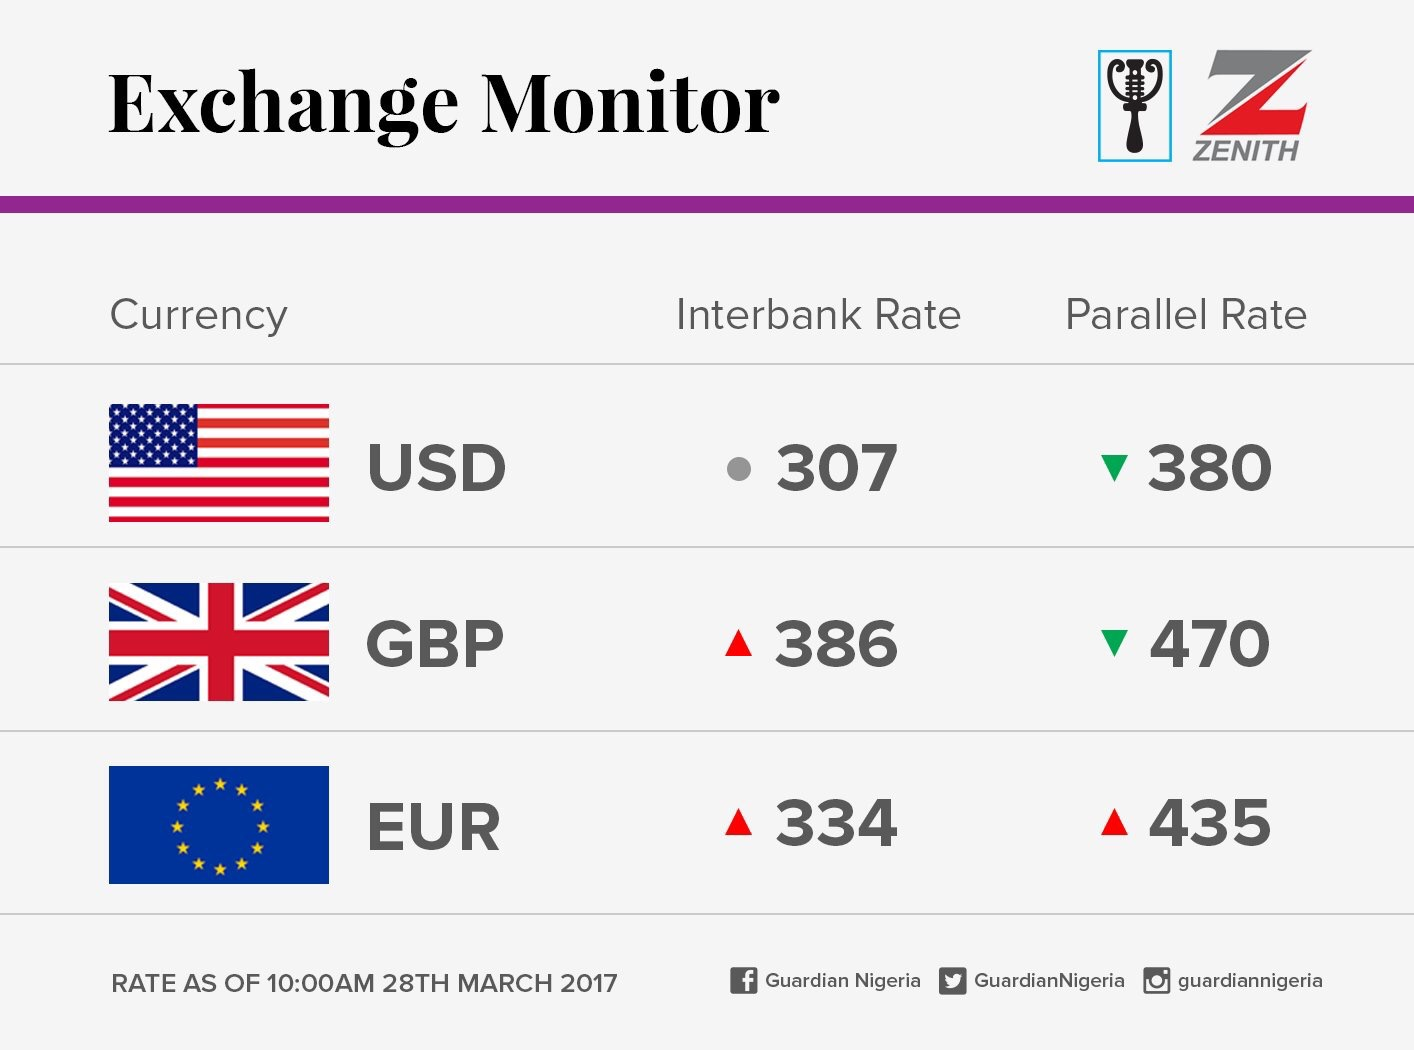 Exchange Rate For 28th March 2017